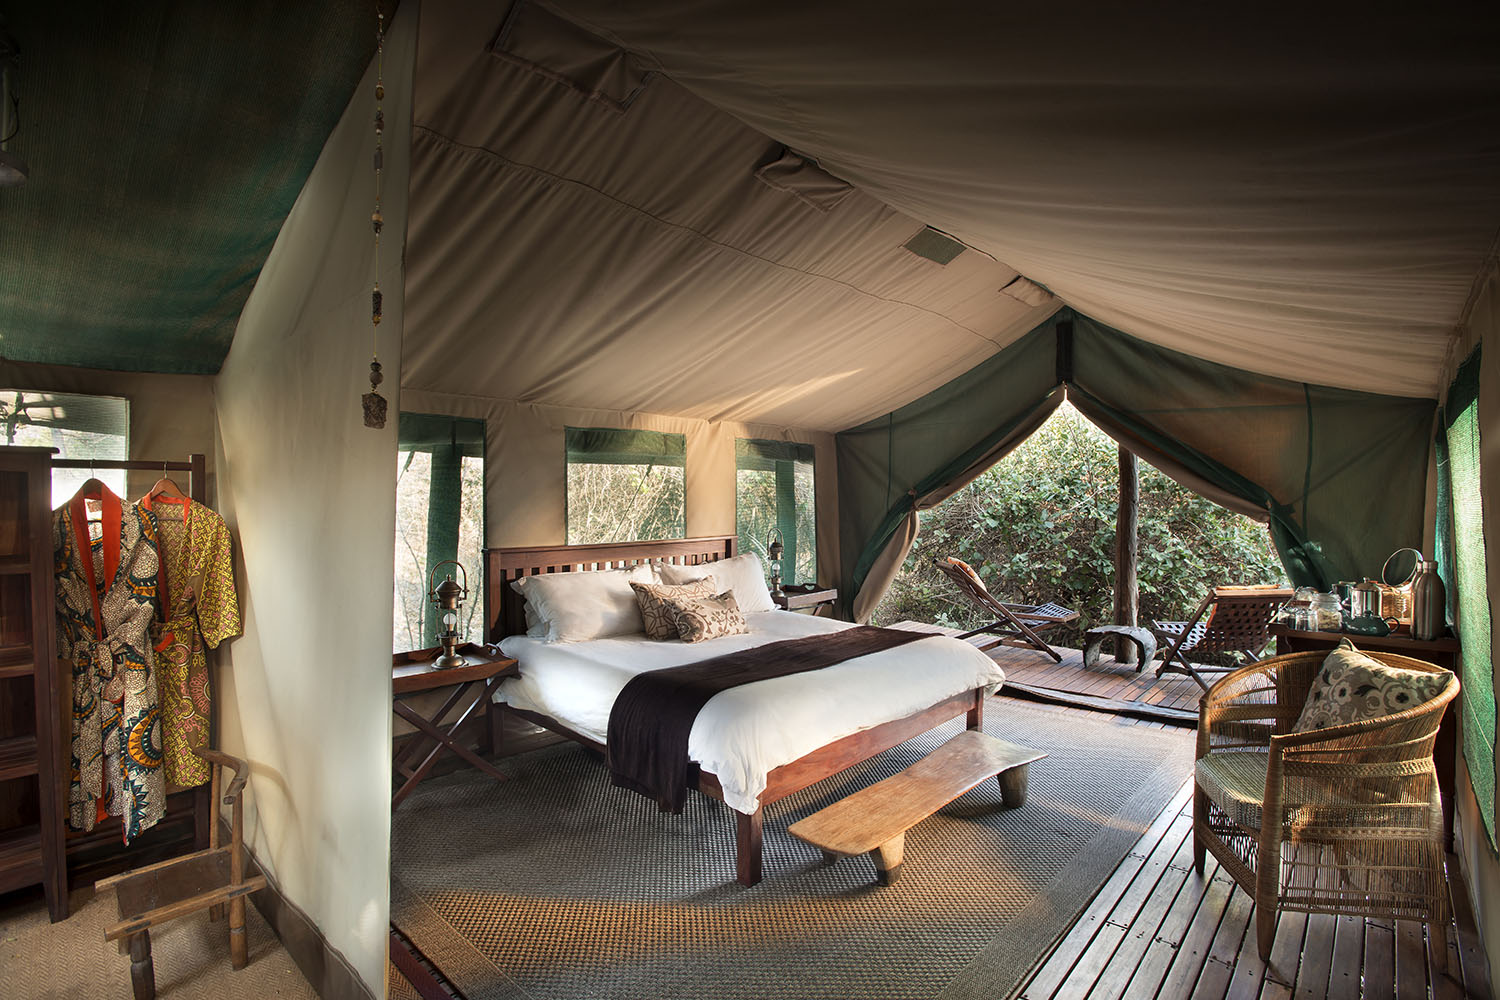 kanga bush camp mana-pools-national-park-lodges-zimbabwe-accommodation-remote-location-bedroom